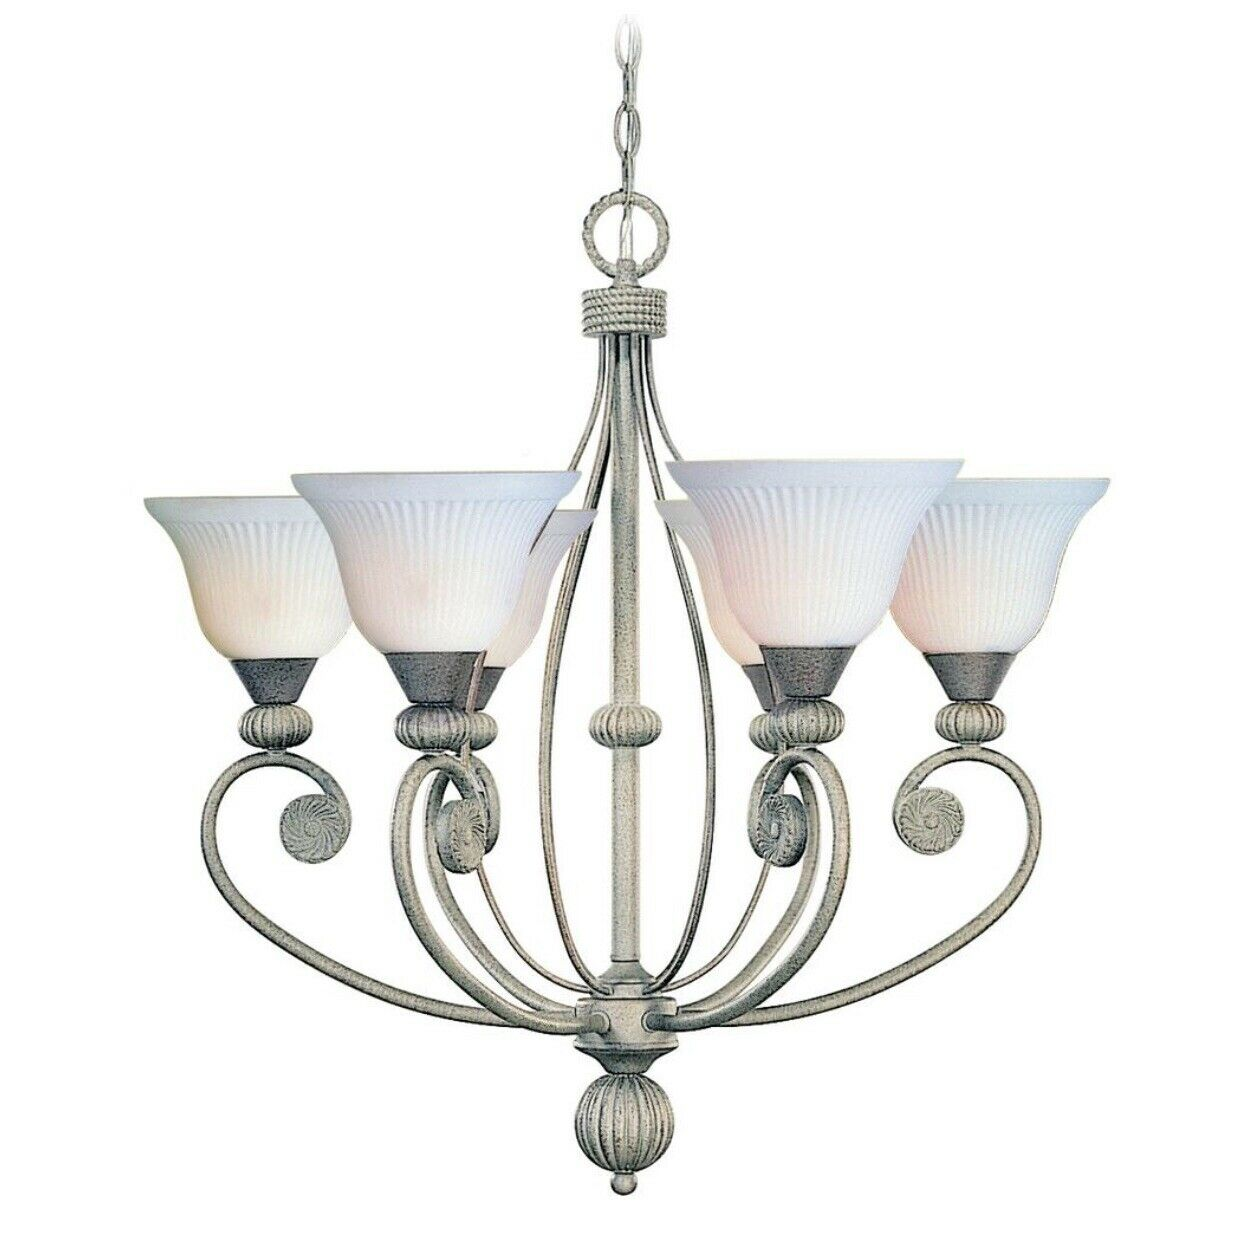 Volume Lighting 5 Light Polished Brass Interior Chandelier